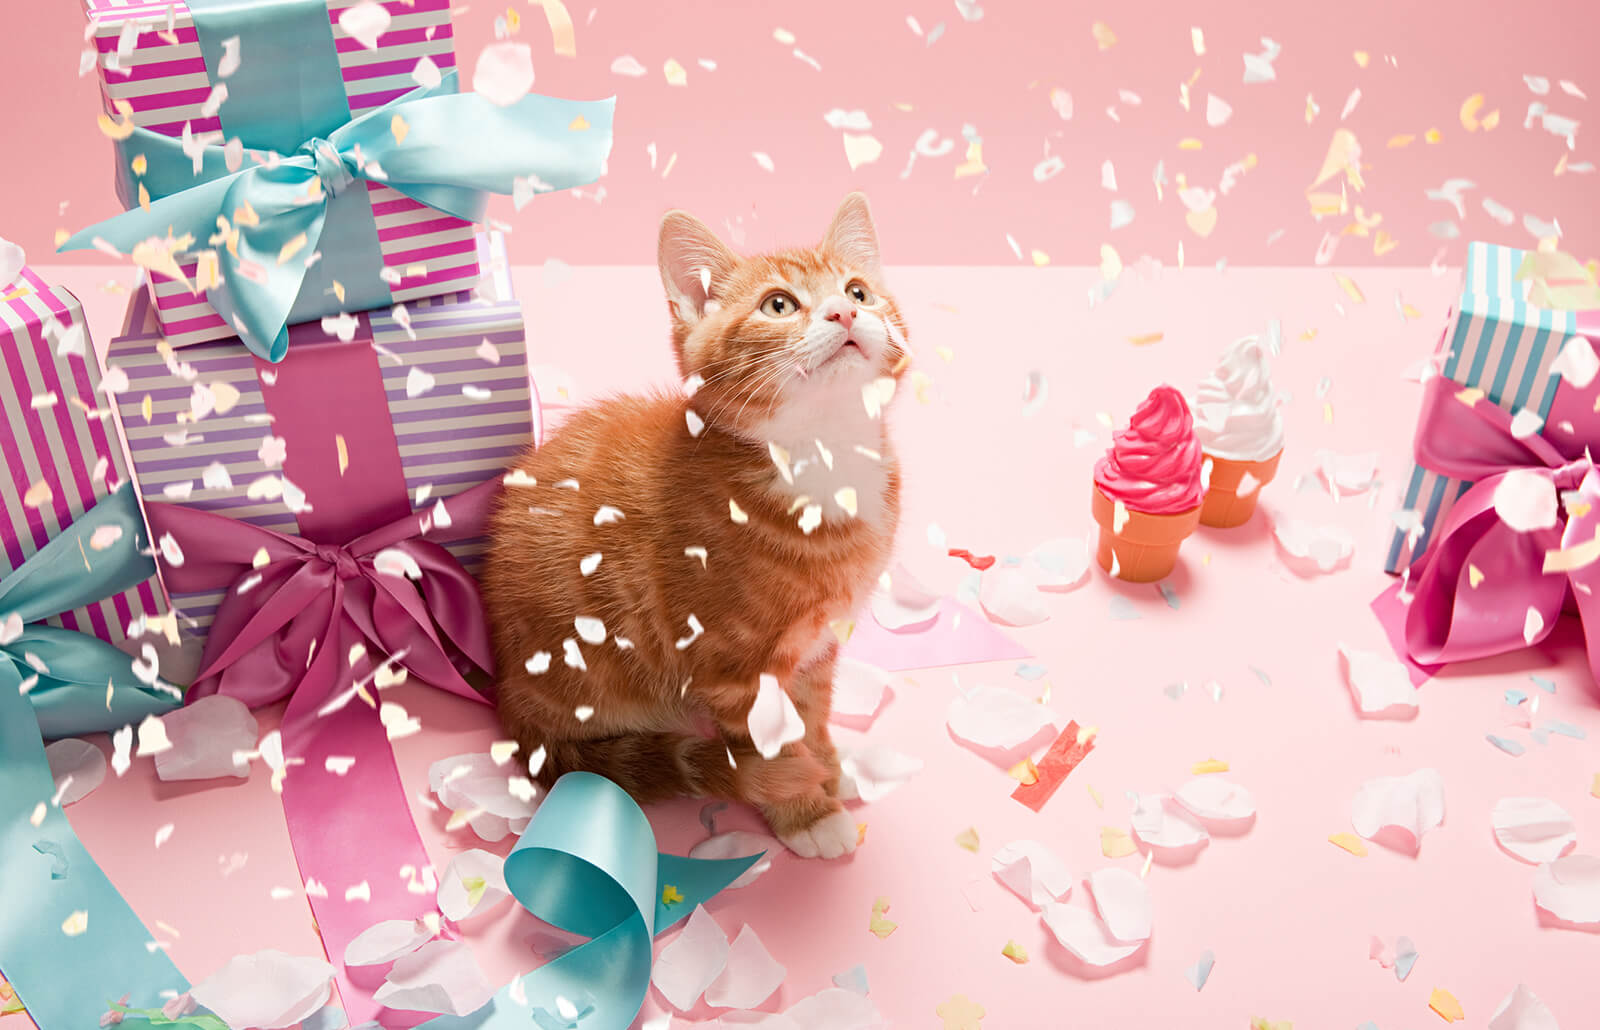 Fun Ideas to Celebrate Your Cat's Birthday | LoveToKnow